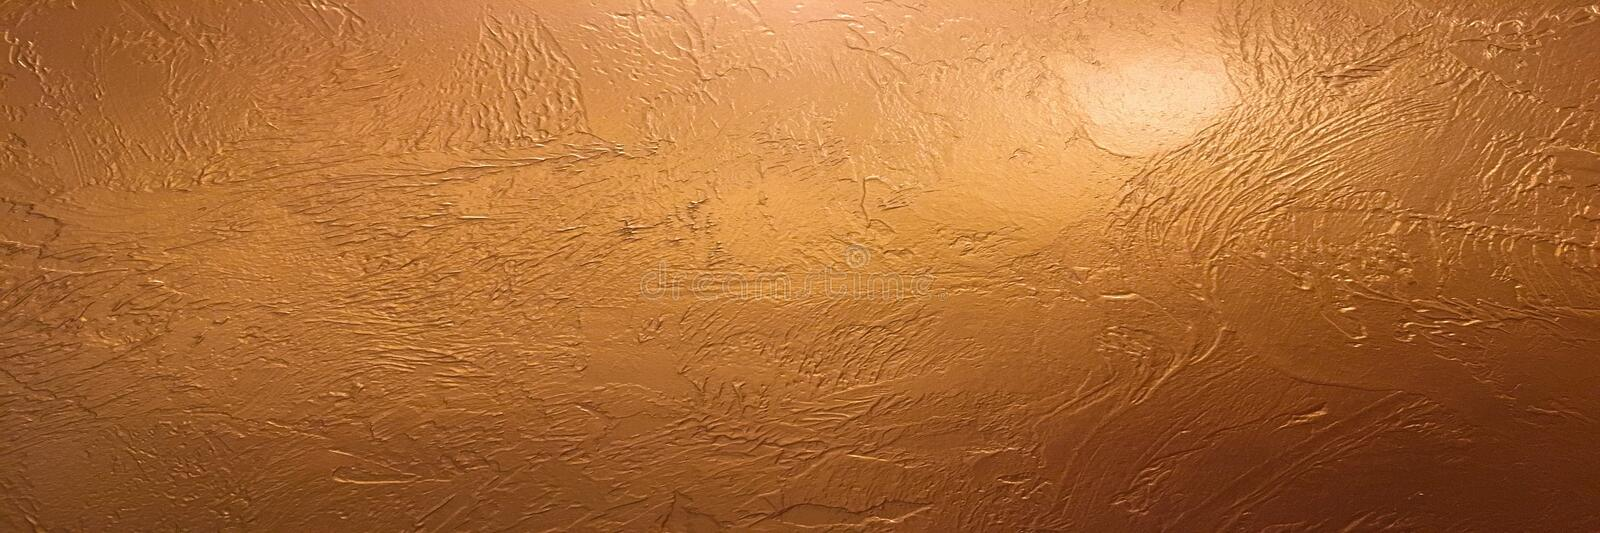 Gold background or texture and gradients shadow. Shiny yellow leaf gold foil texture background. Gold background paper, texture is stock photo